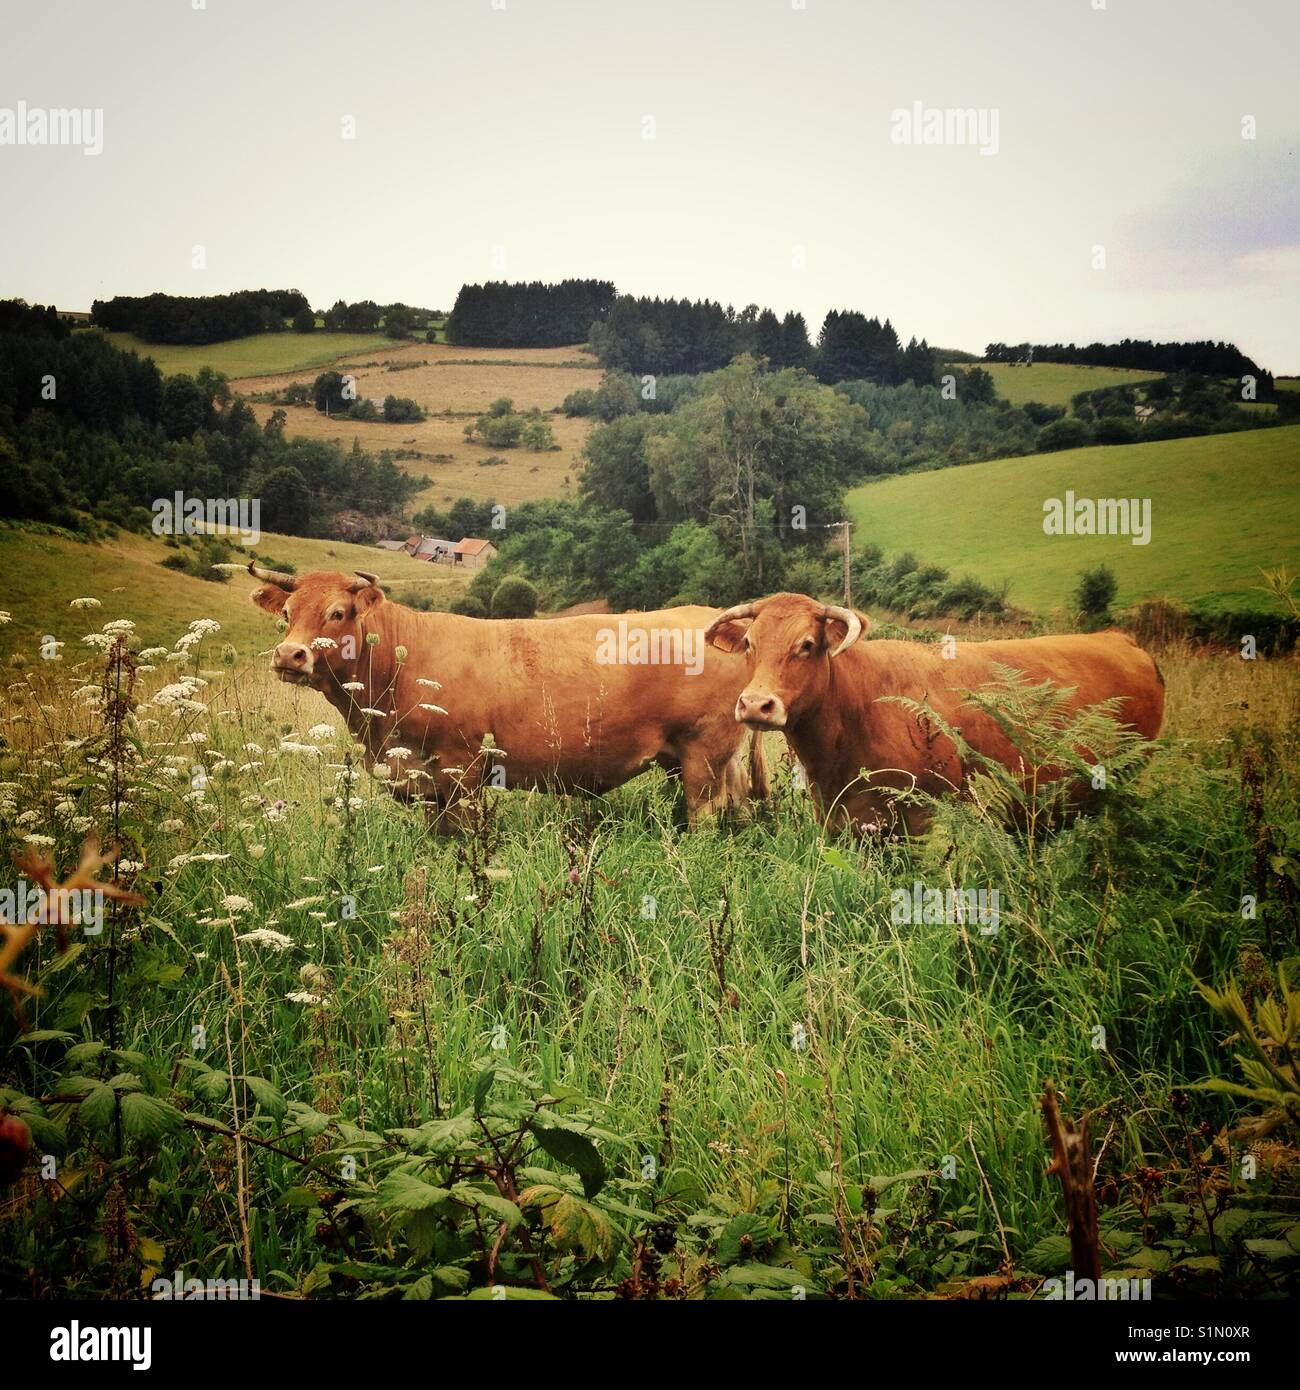 Two red Limousin cows in a field, looking at the viewer - Stock Image